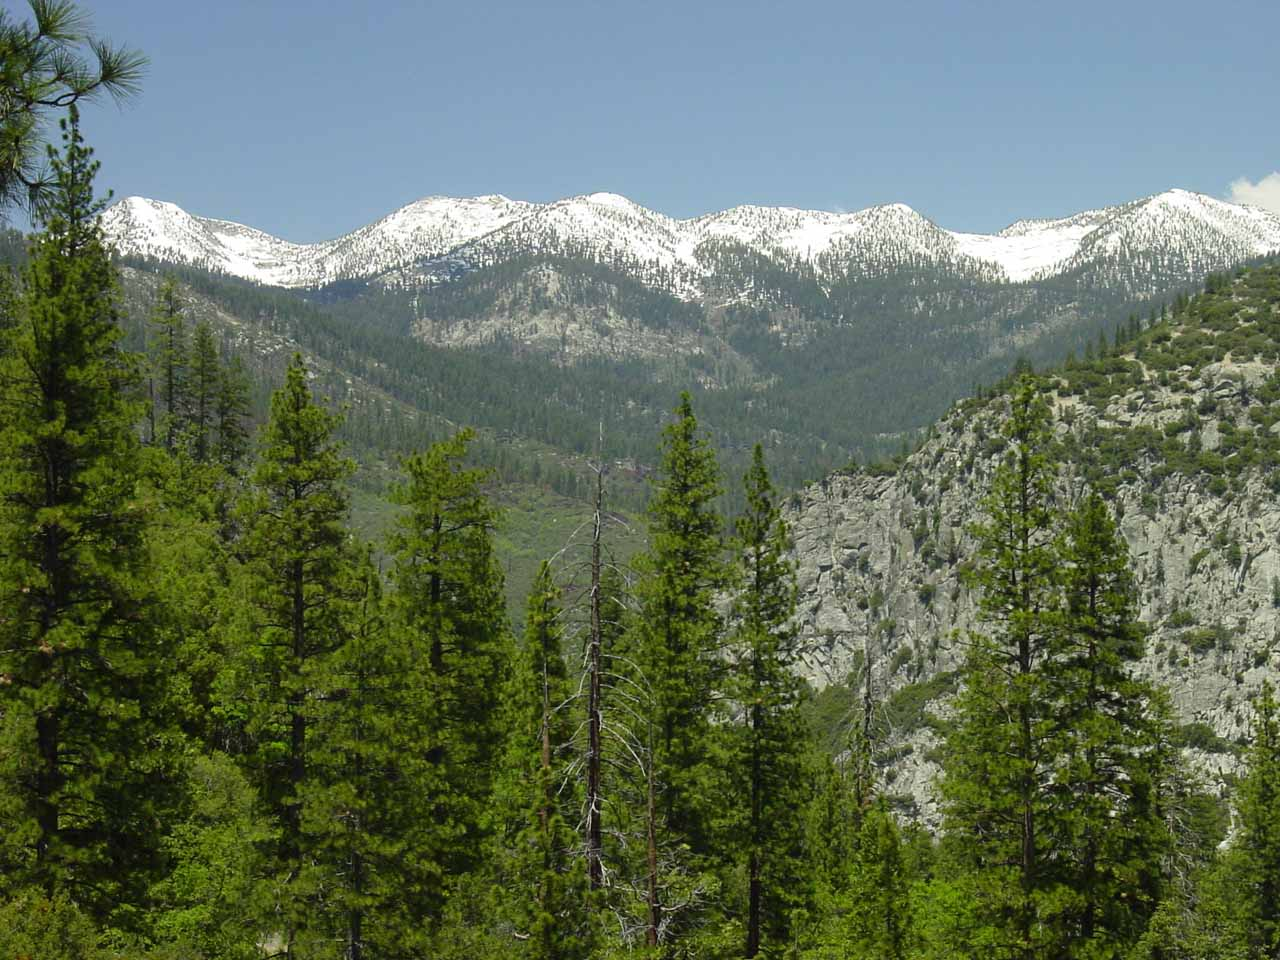 Pretty view towards the Monarch Divide from the Don Cecil Trail